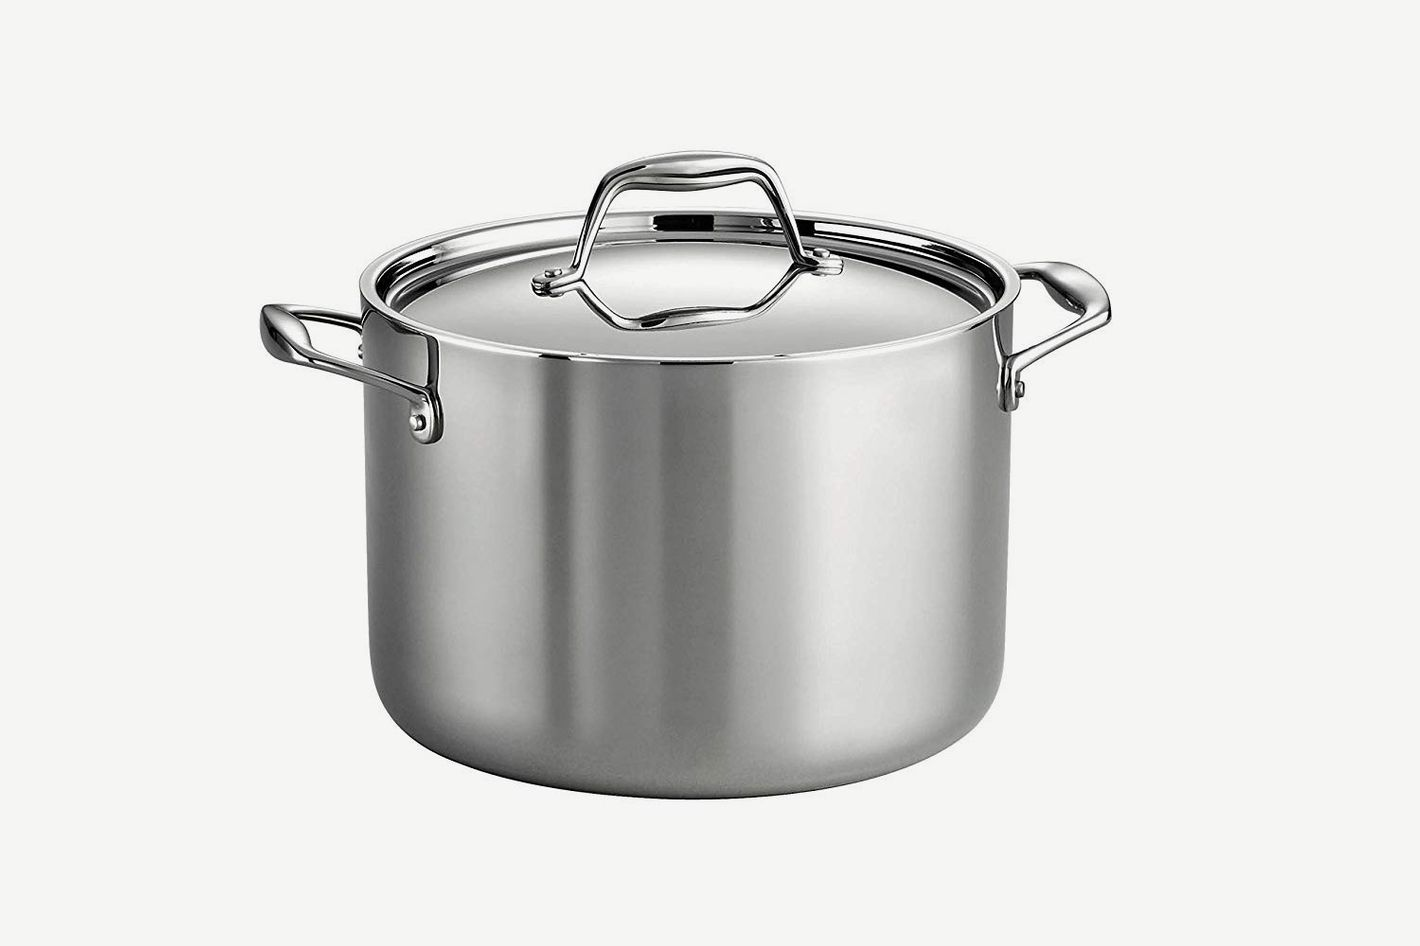 Tramontina 80116/041DS Gourmet 18/10 Stainless Steel Induction-Ready Tri-Ply Clad Covered Stock Pot